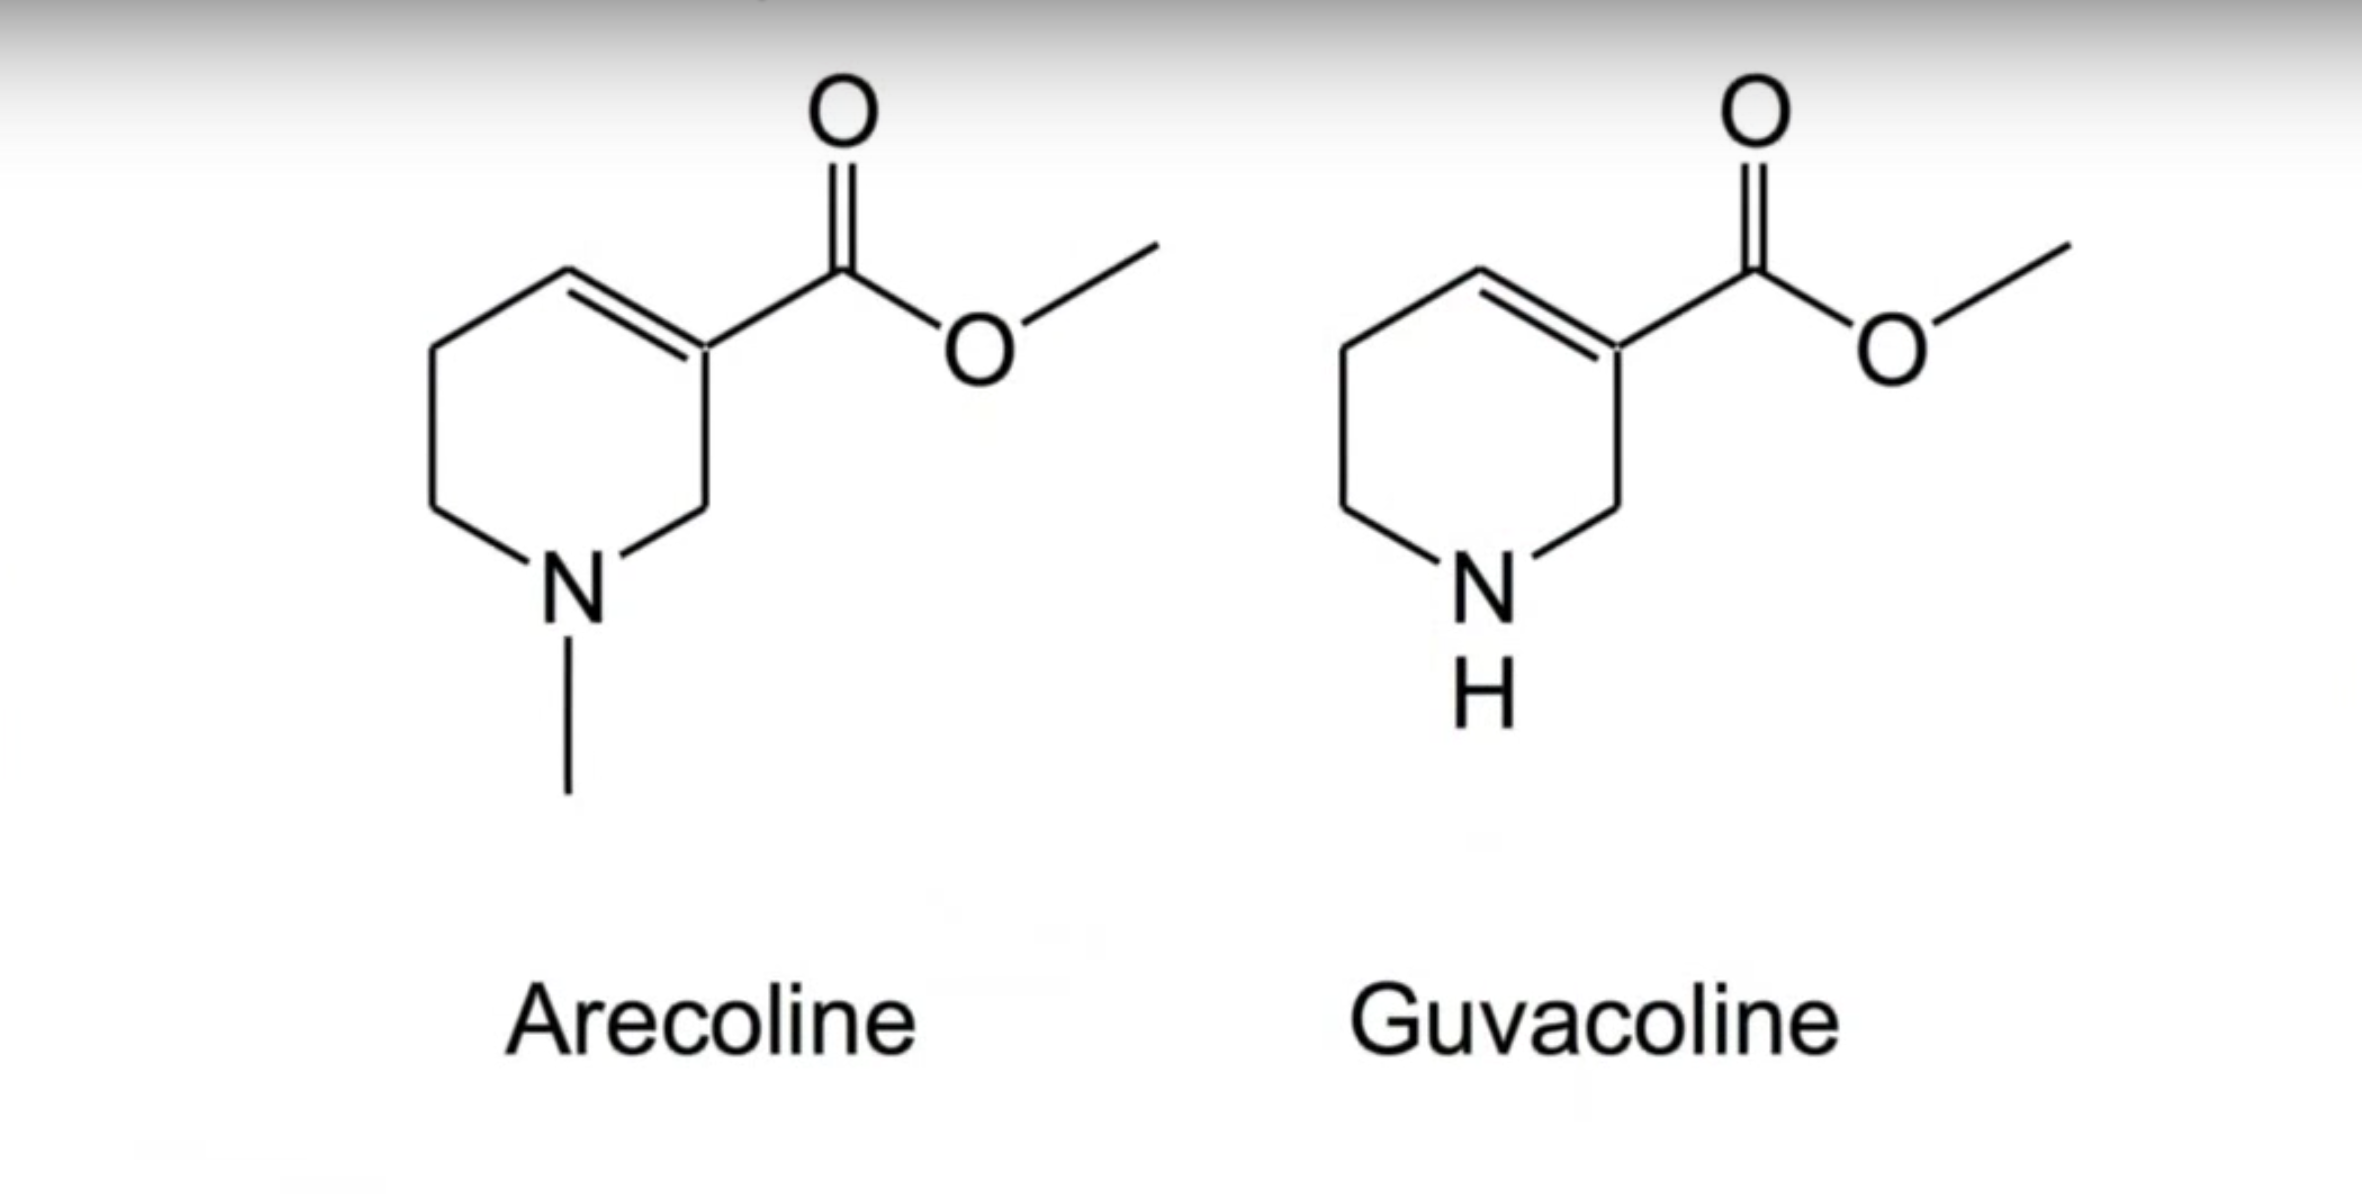 Arecoline and Guvacoline are two of the alkaloid molecules in areca nuts that could show scientists better ways to help people quit smoking.